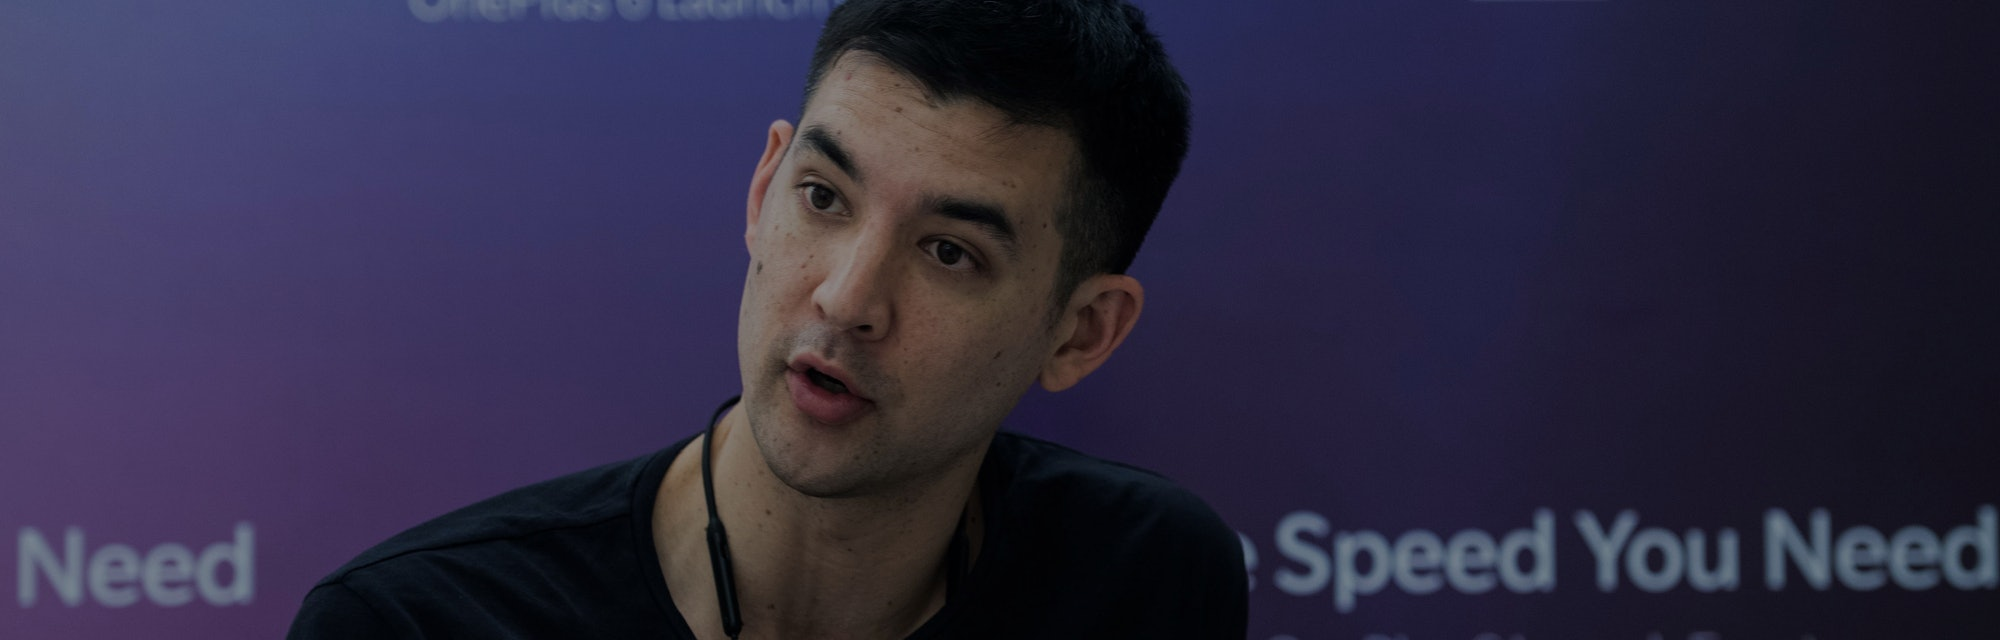 MUMBAI, INDIA - MAY 17: Kyle Kiang, Global Head of Marketing, OnePlus, poses during an interview with Hindustan Times, at NSCI, on May 17, 2018 in Mumbai, India. (Photo by Satish Bate/Hindustan Times via Getty Images)